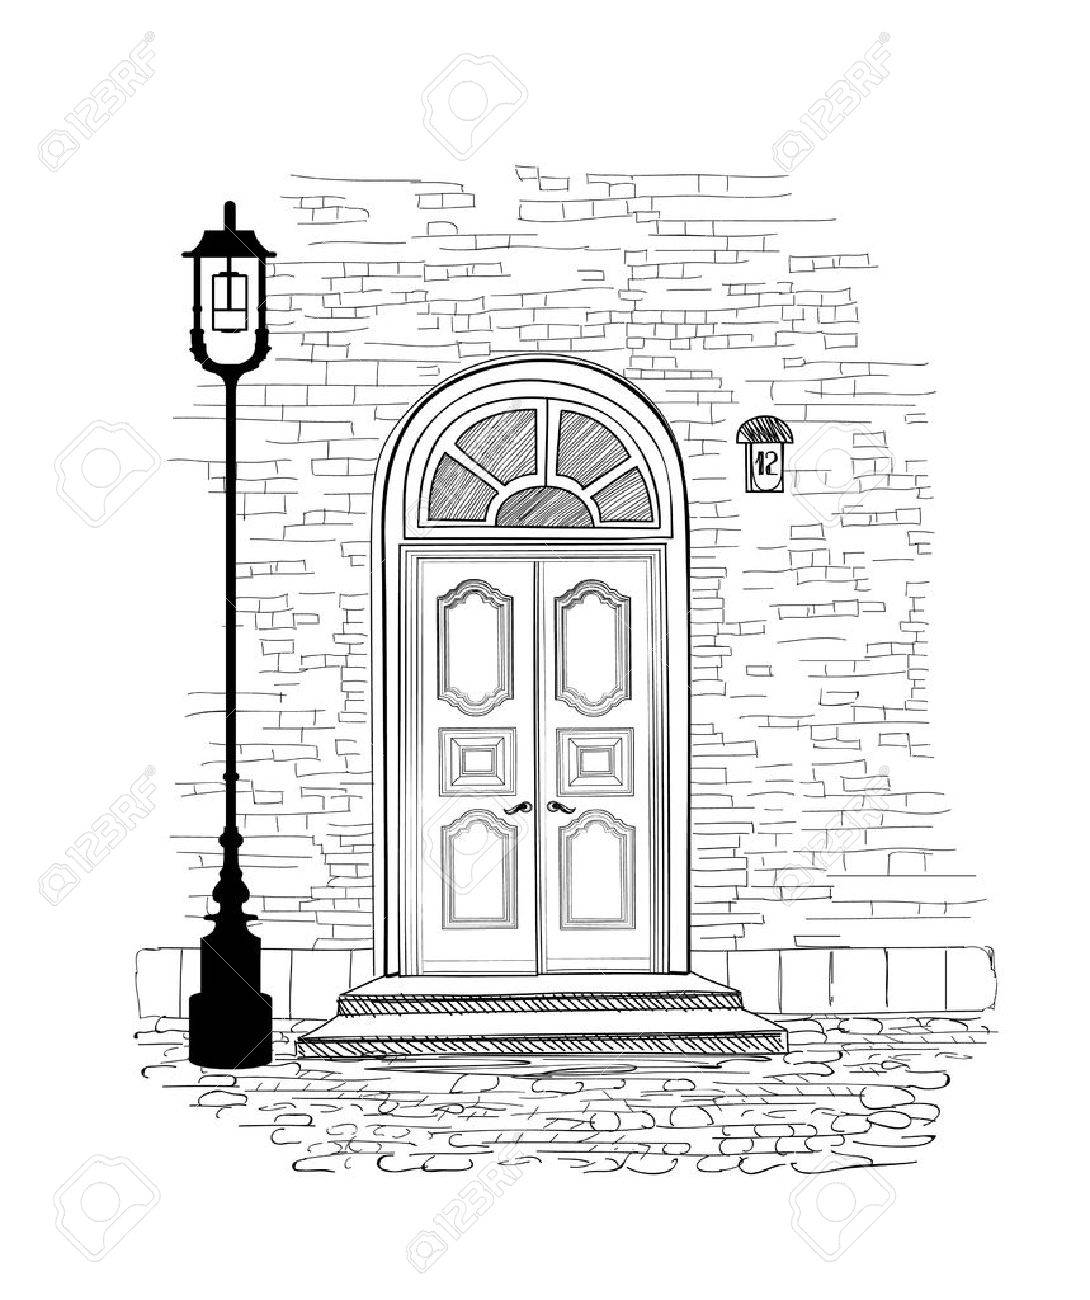 Old doors in vintage style over white background. House entrance hand drawing illustration. Doodle cosy street alleyway wallpaper design - 60824805